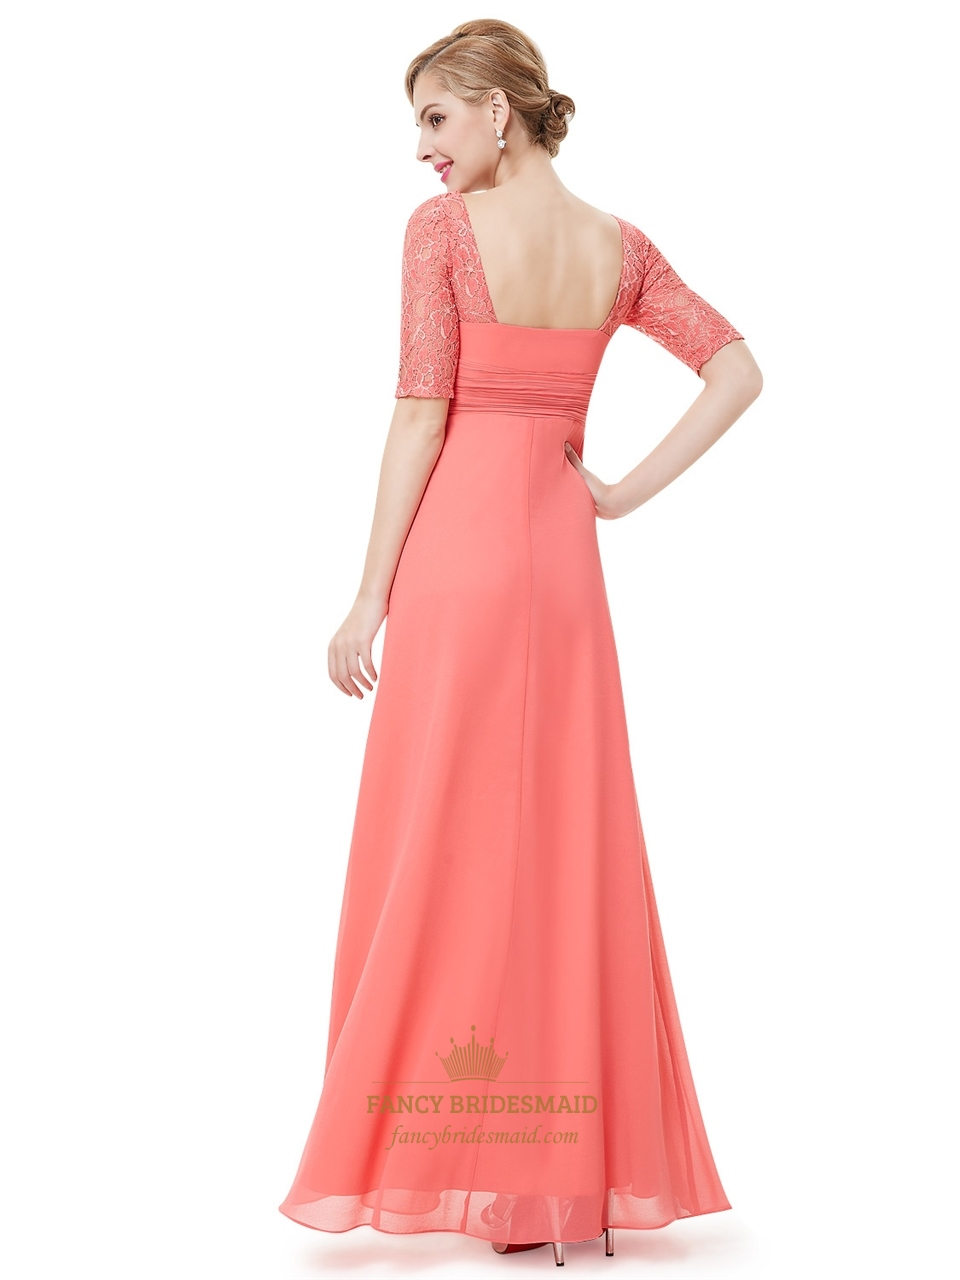 59a8dae5124 Coral Chiffon Floor Length Bridesmaid Dress With Lace Half Sleeves ...